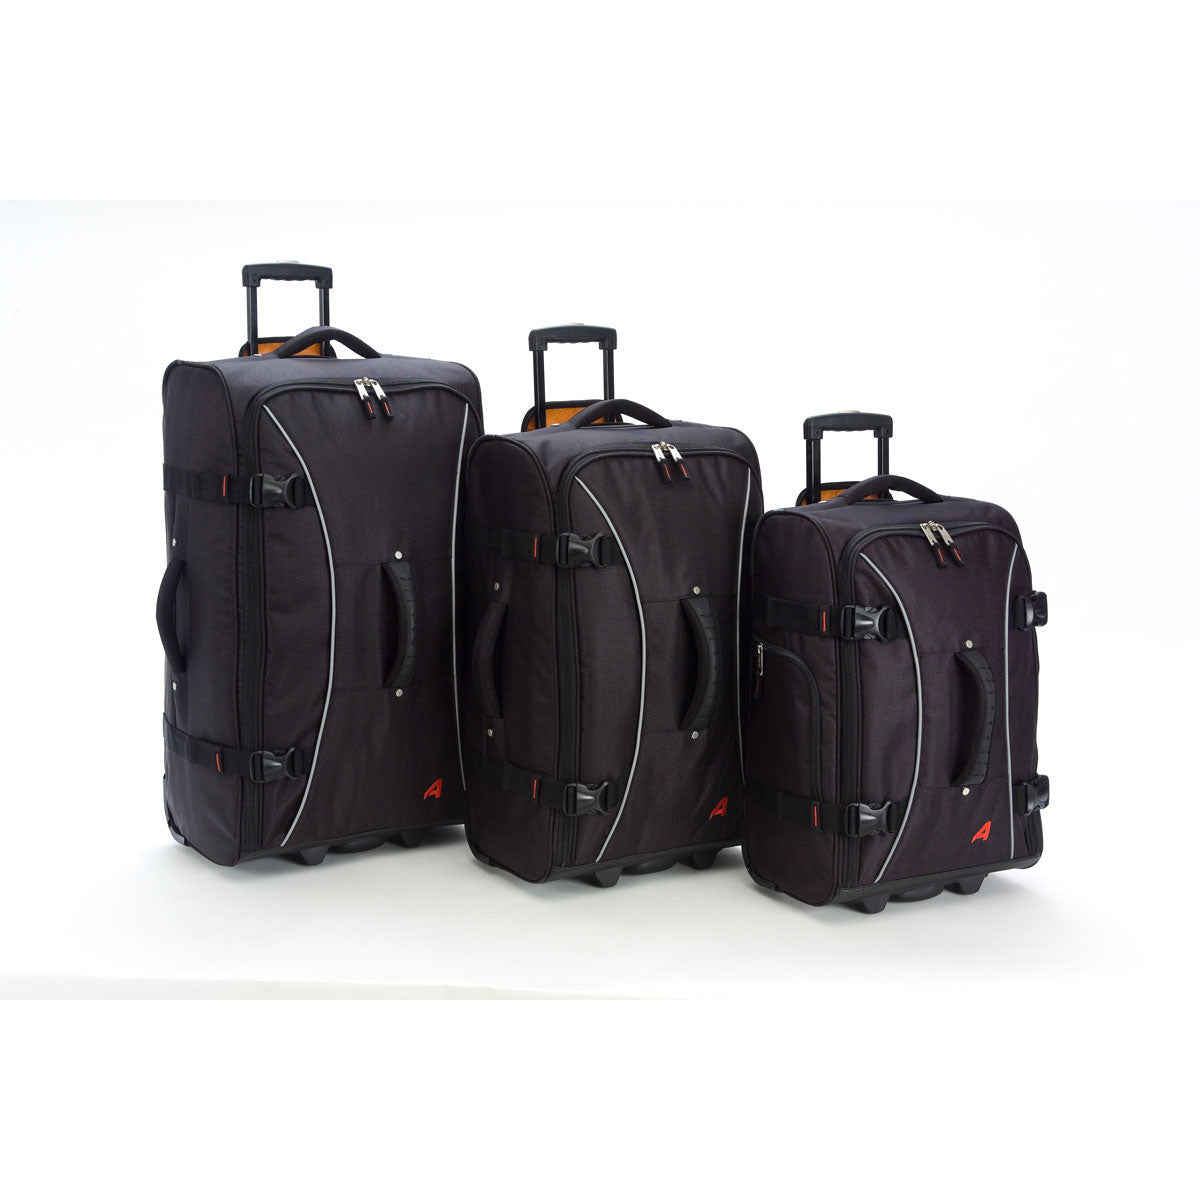 Athalon 3 Piece Hybrid Luggage Set